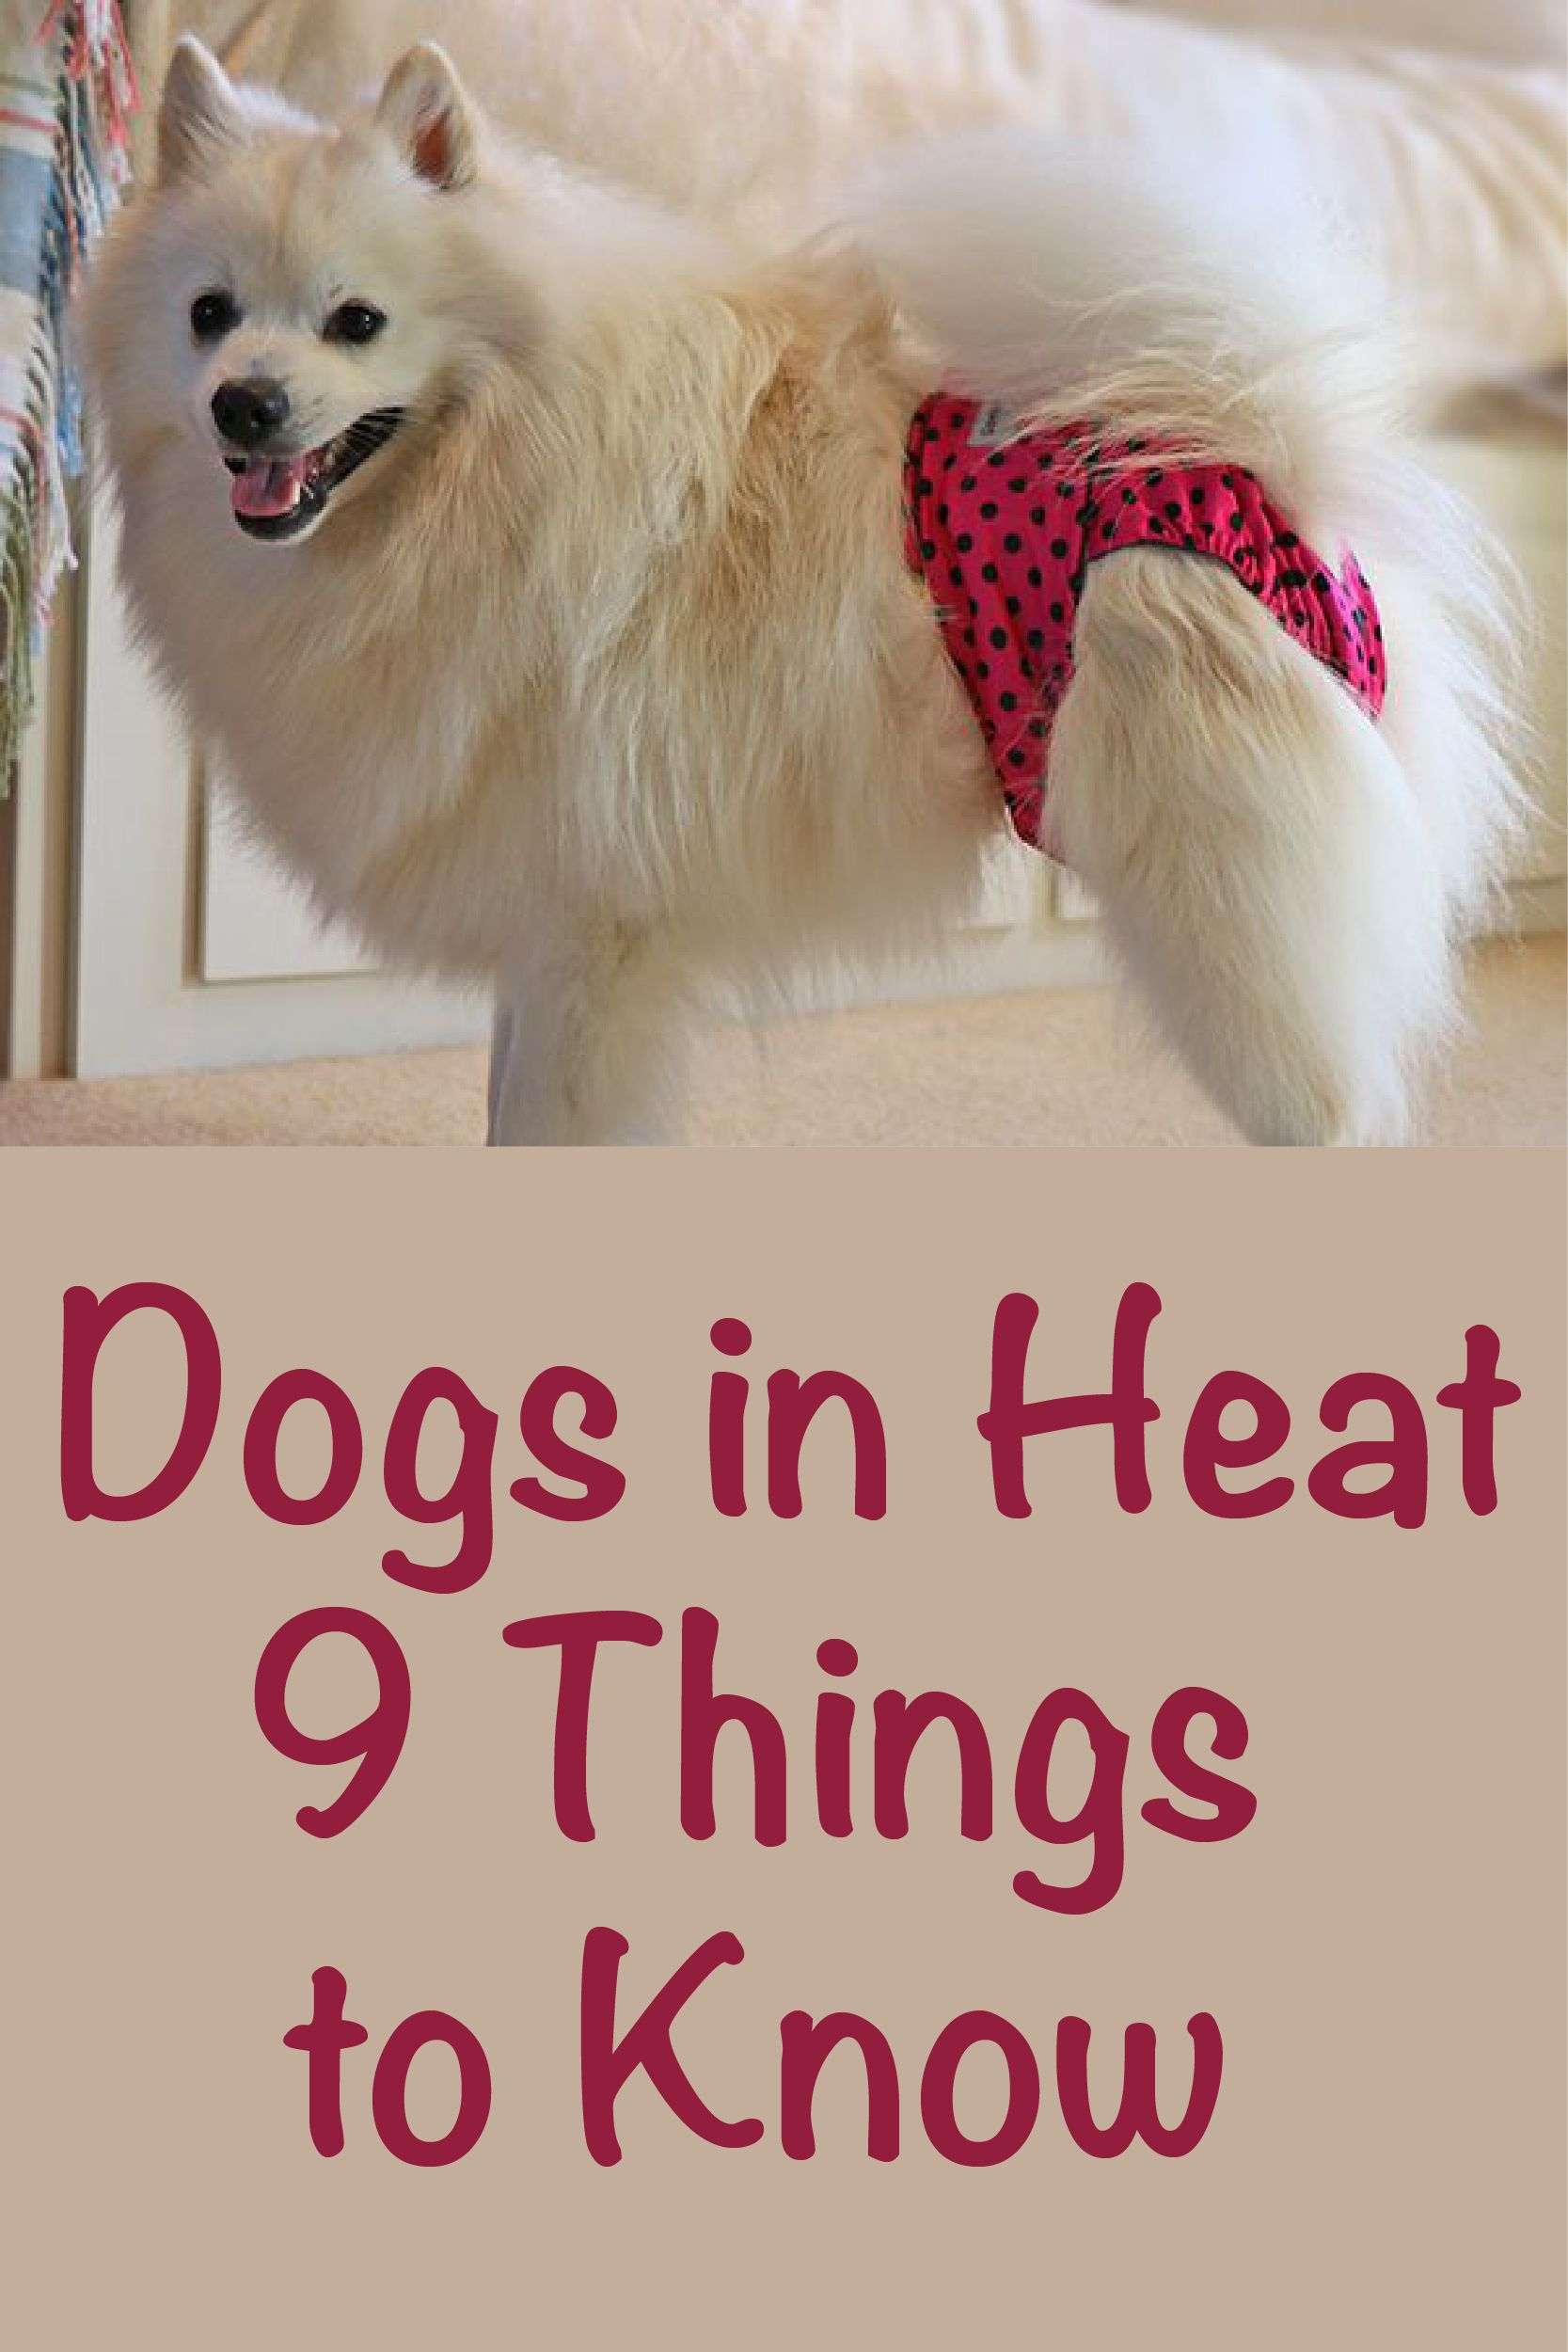 Dogs In Heat 9 Things To Know Dog In Heat Female Dog In Heat Dog Heat Cycle